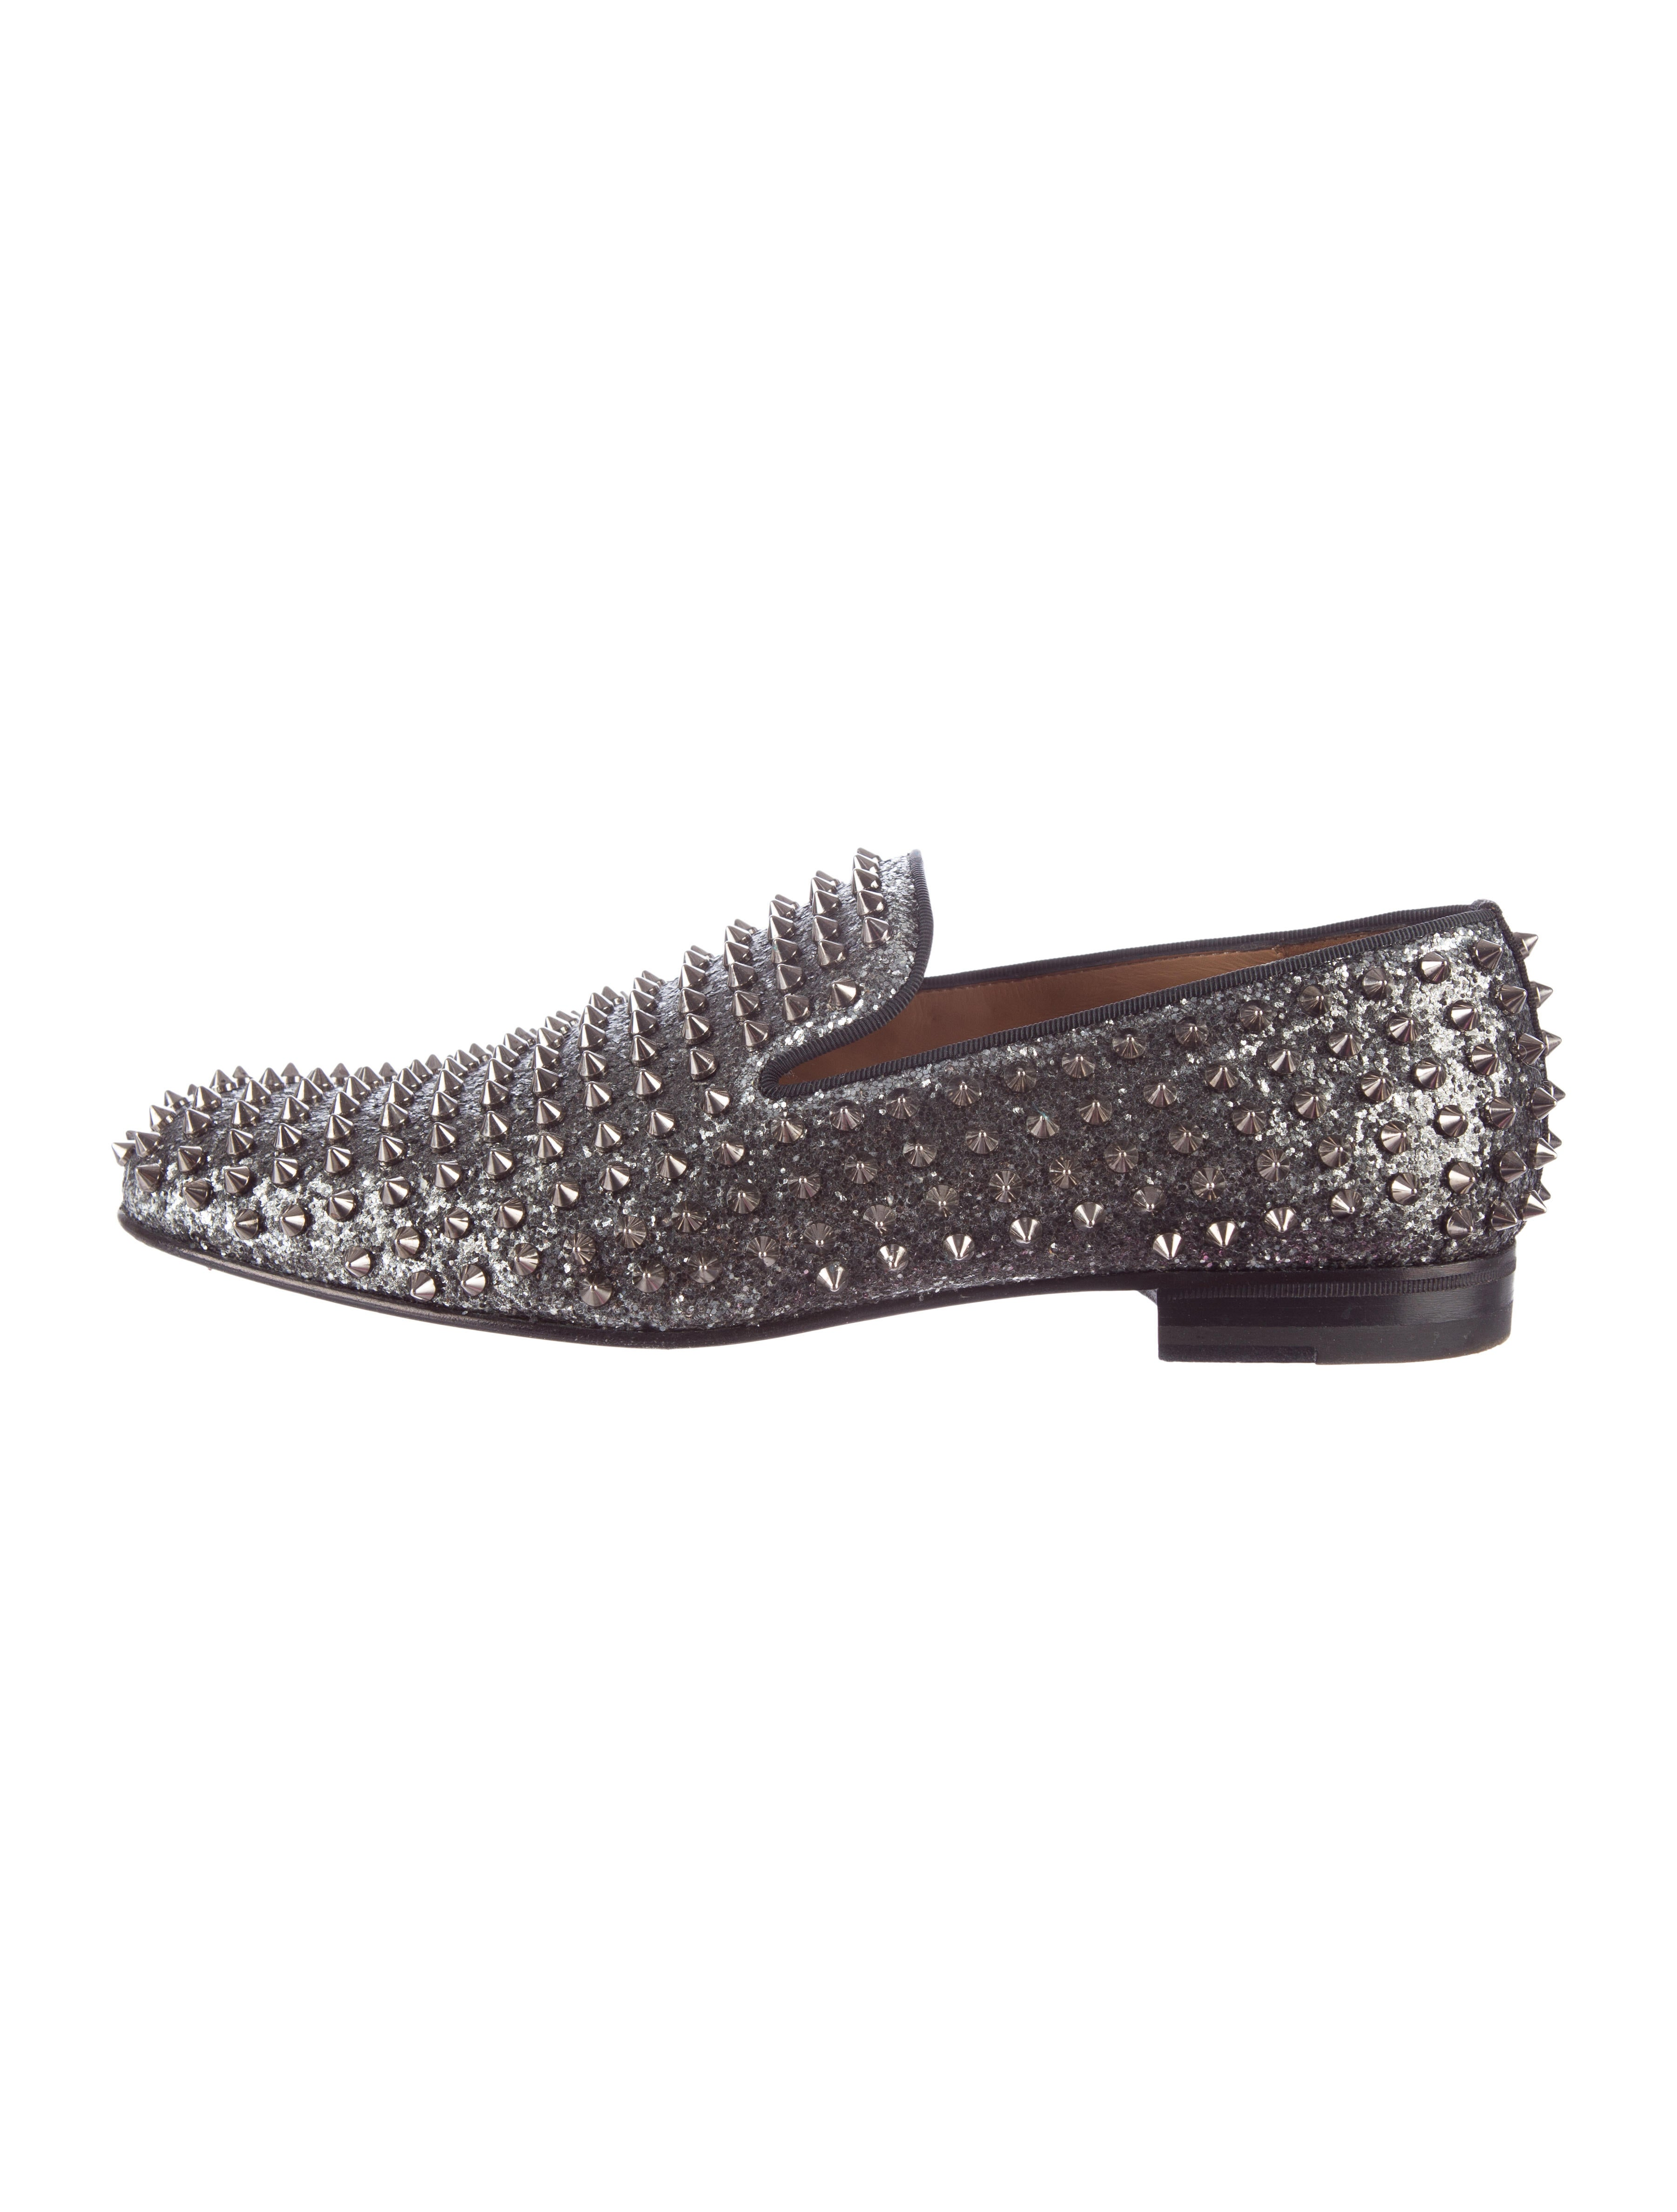 e55205db8c1 Christian Louboutin Prive Lou Spikes Orlato Men's Flat | Law Lanka